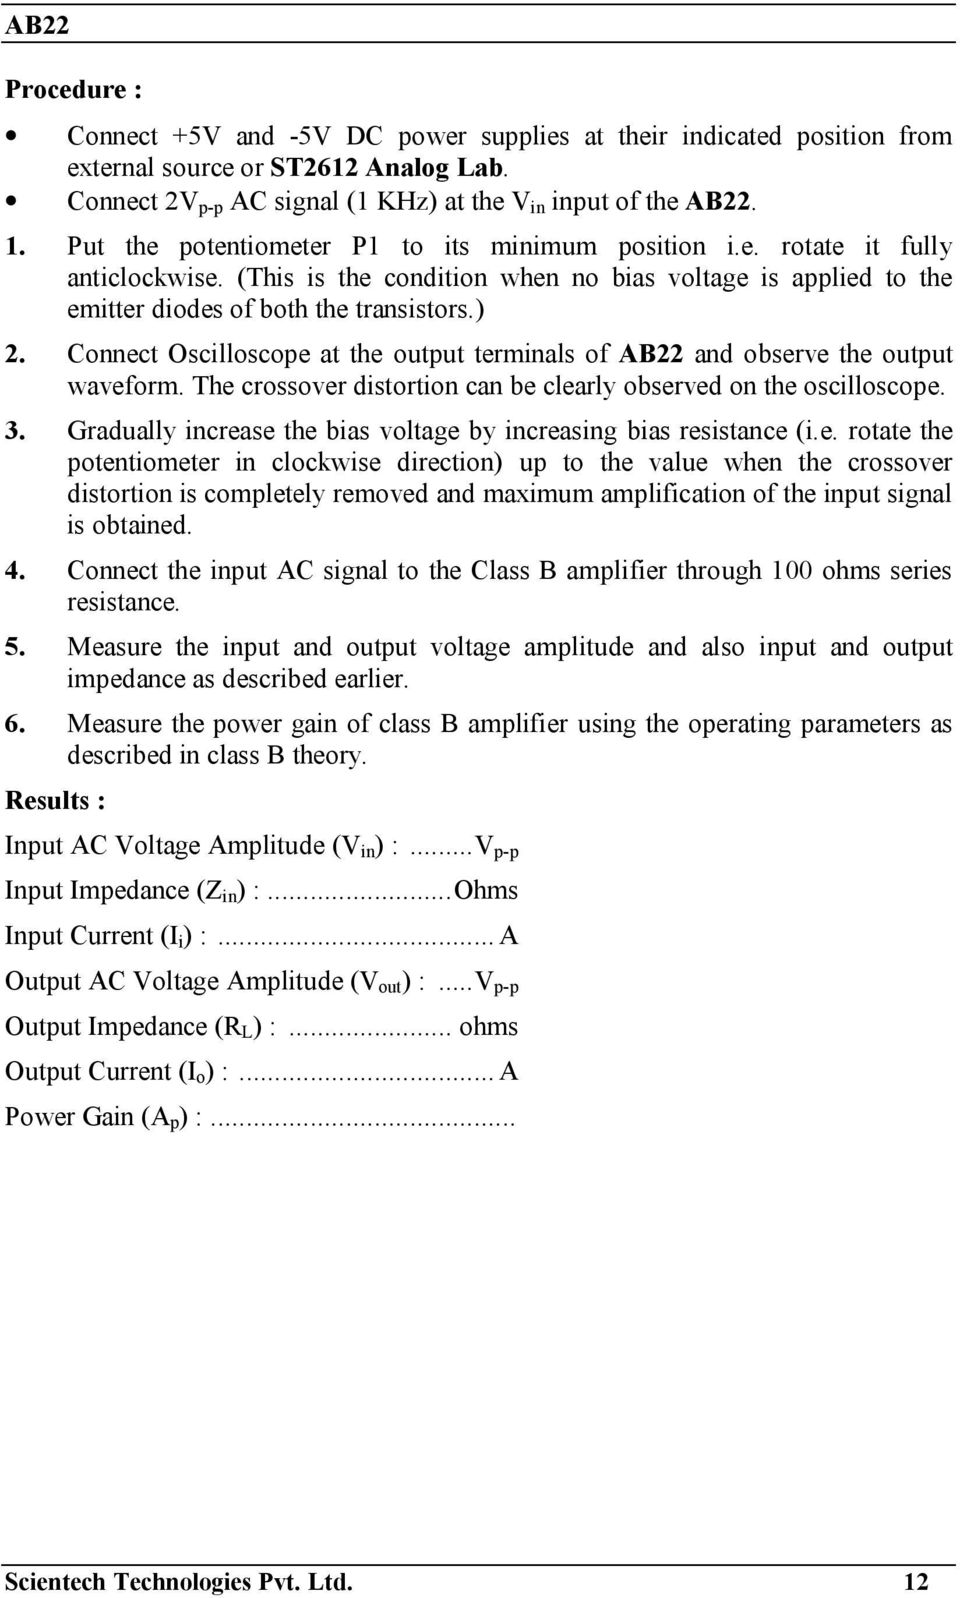 Operating Manual Ver Pdf Class D Amplifier Circuit Lm1036 Tone Controlled Irs2092 Connect Oscilloscope At The Output Terminals Of Ab22 And Observe Waveform Crossover